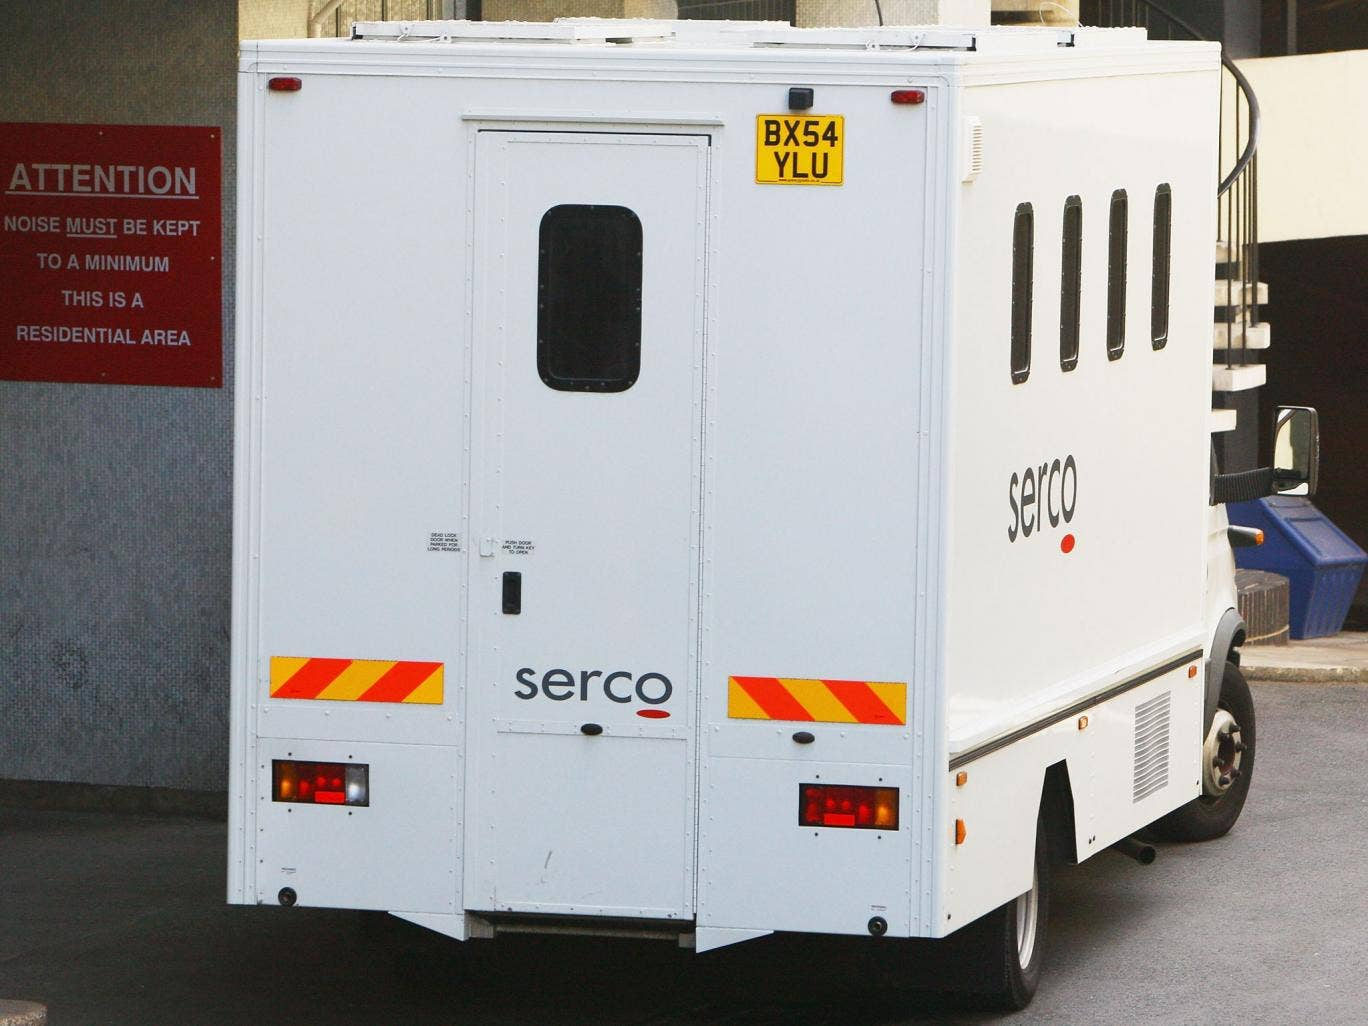 A Serco van used to transport defenders. Serco has also come under fire for overcharging taxpayers